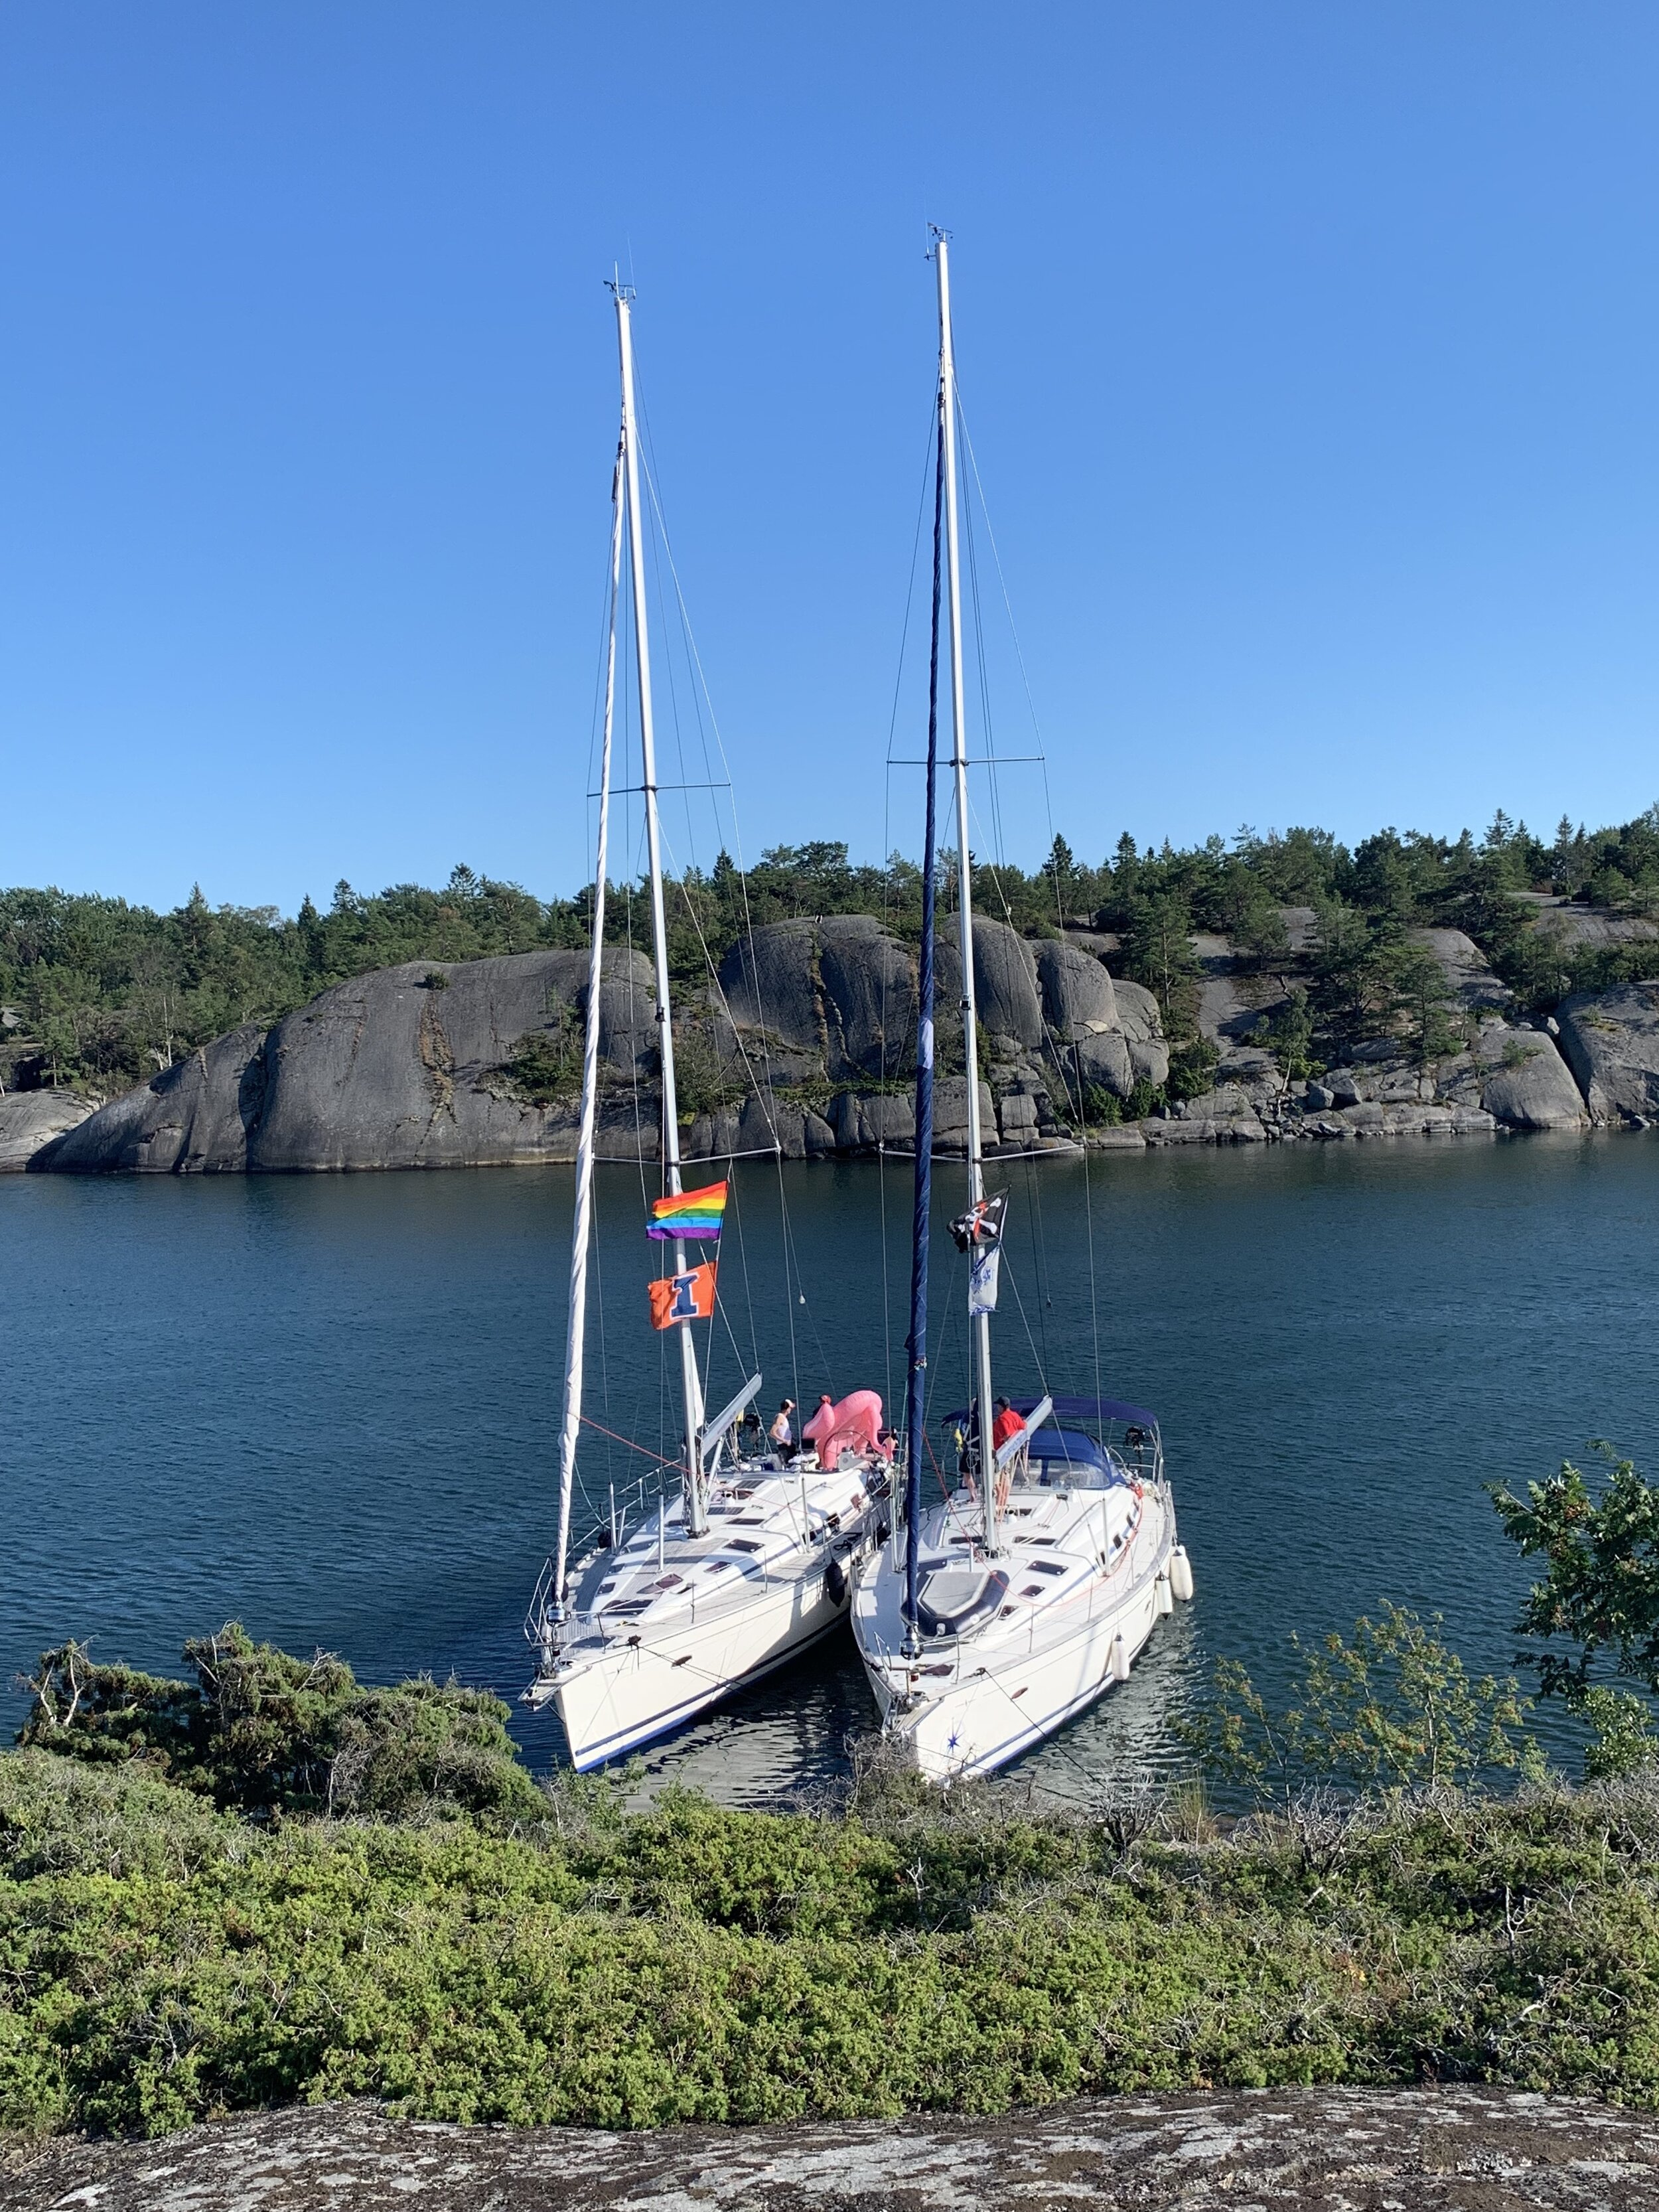 One of our smaller flotillas in Sweden